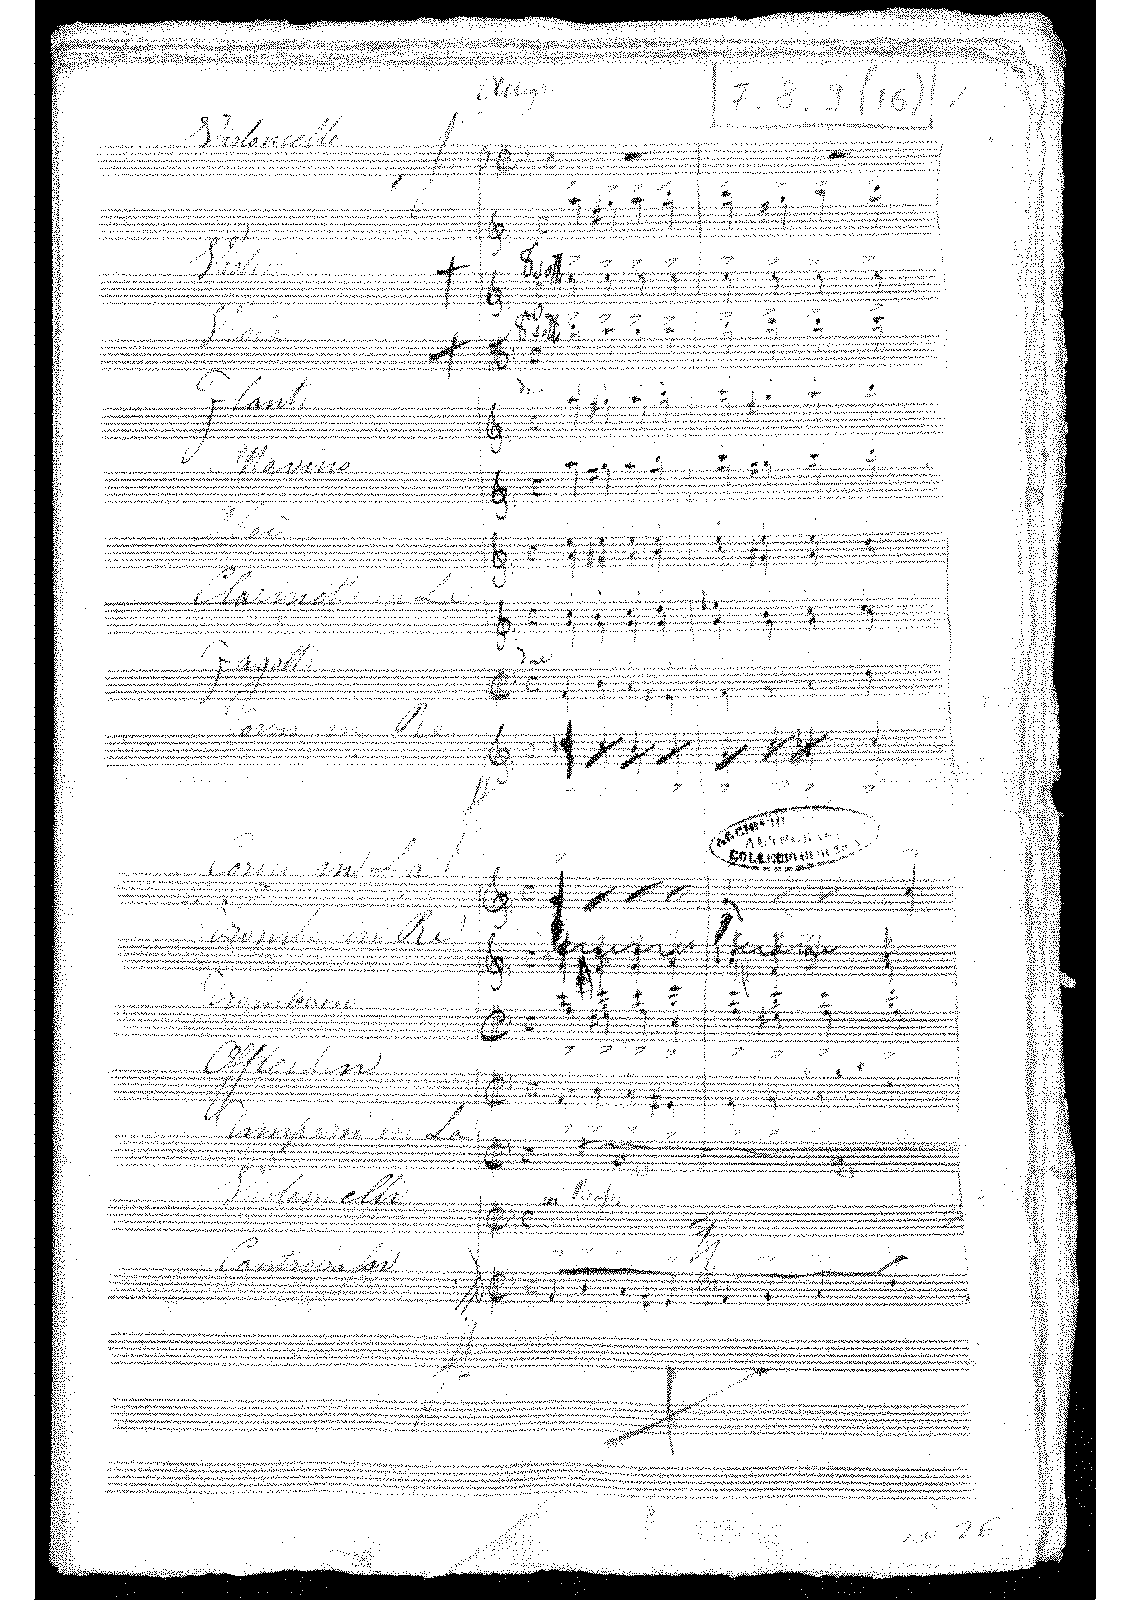 PMLP428650-Conti - Piece for Cello and Orchestra (untitled) manuscript.pdf